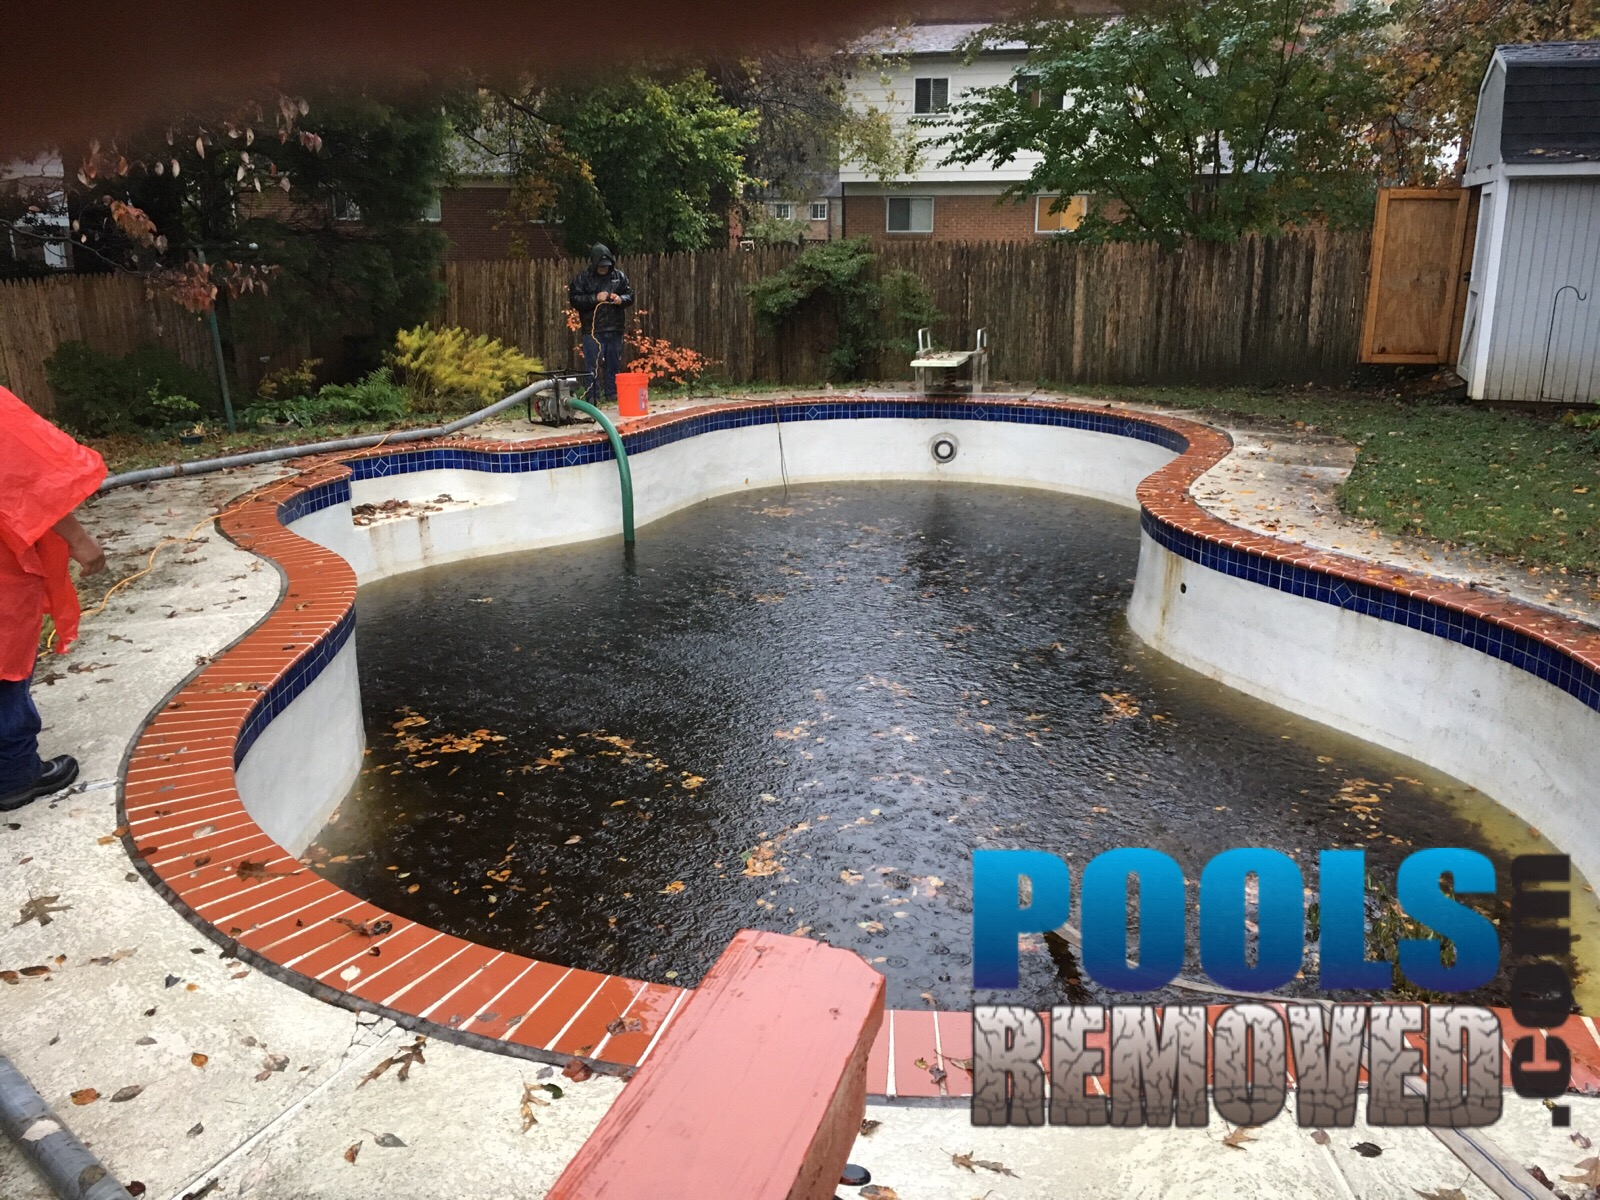 In Ground Swimming Pool Before Removal- Demo College Park Maryland